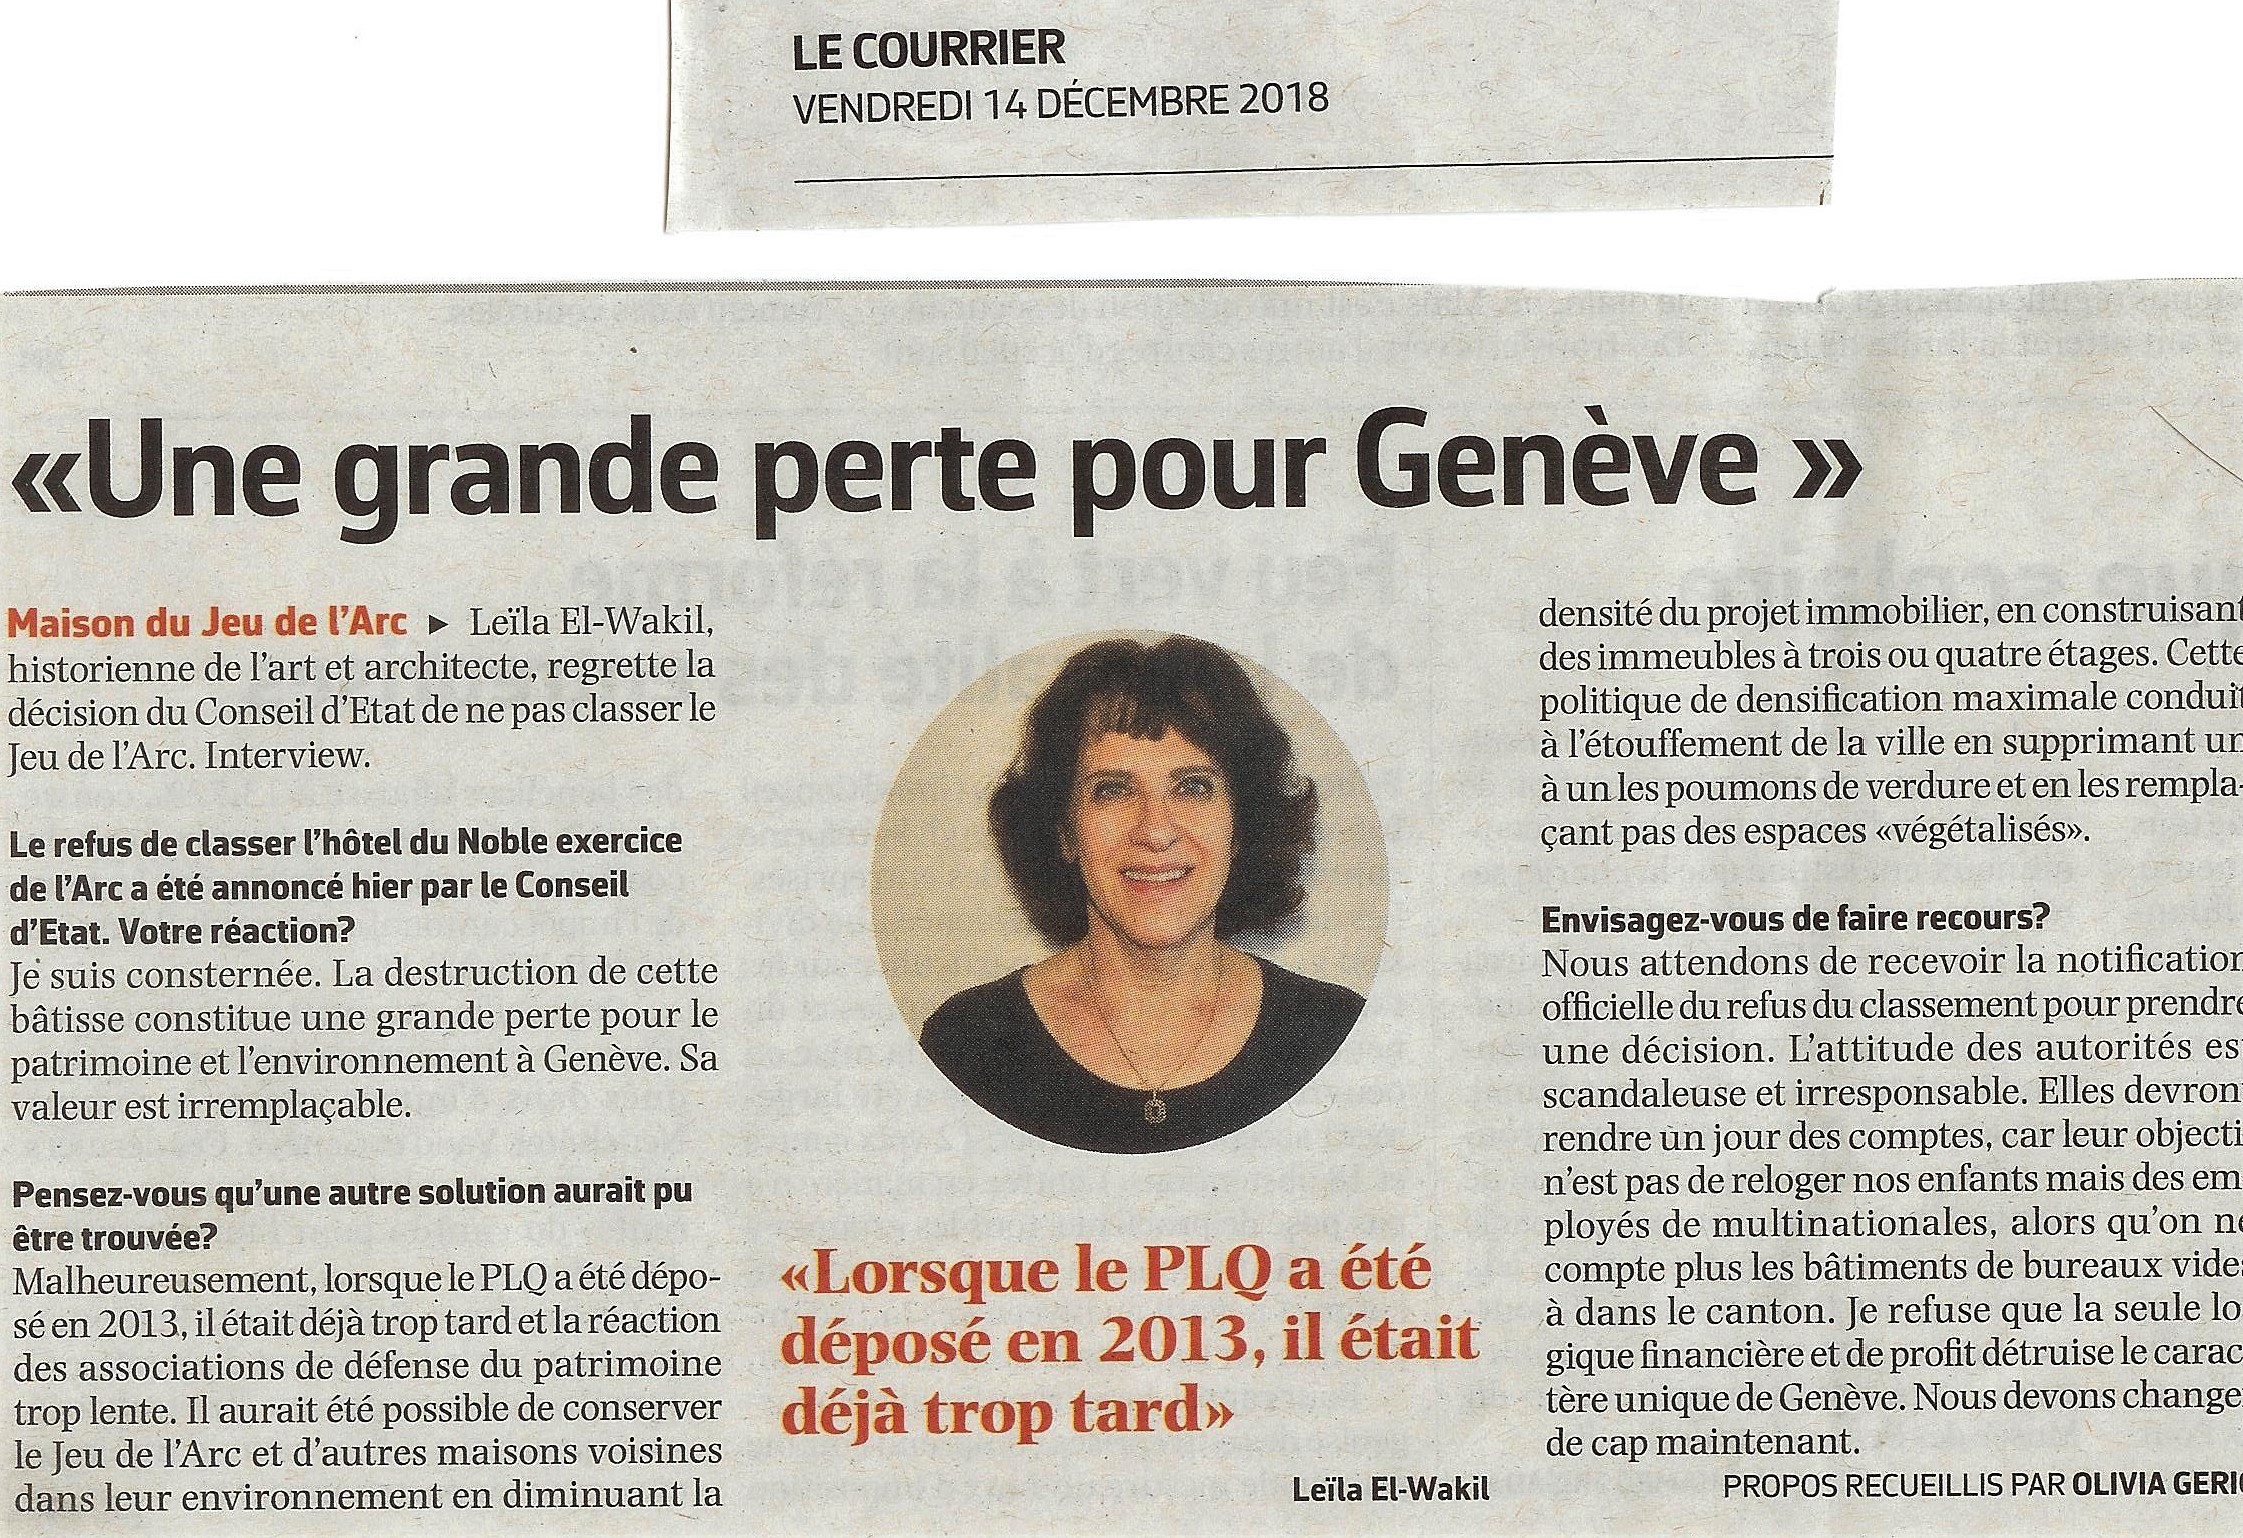 LE COURRIER 17 DEC